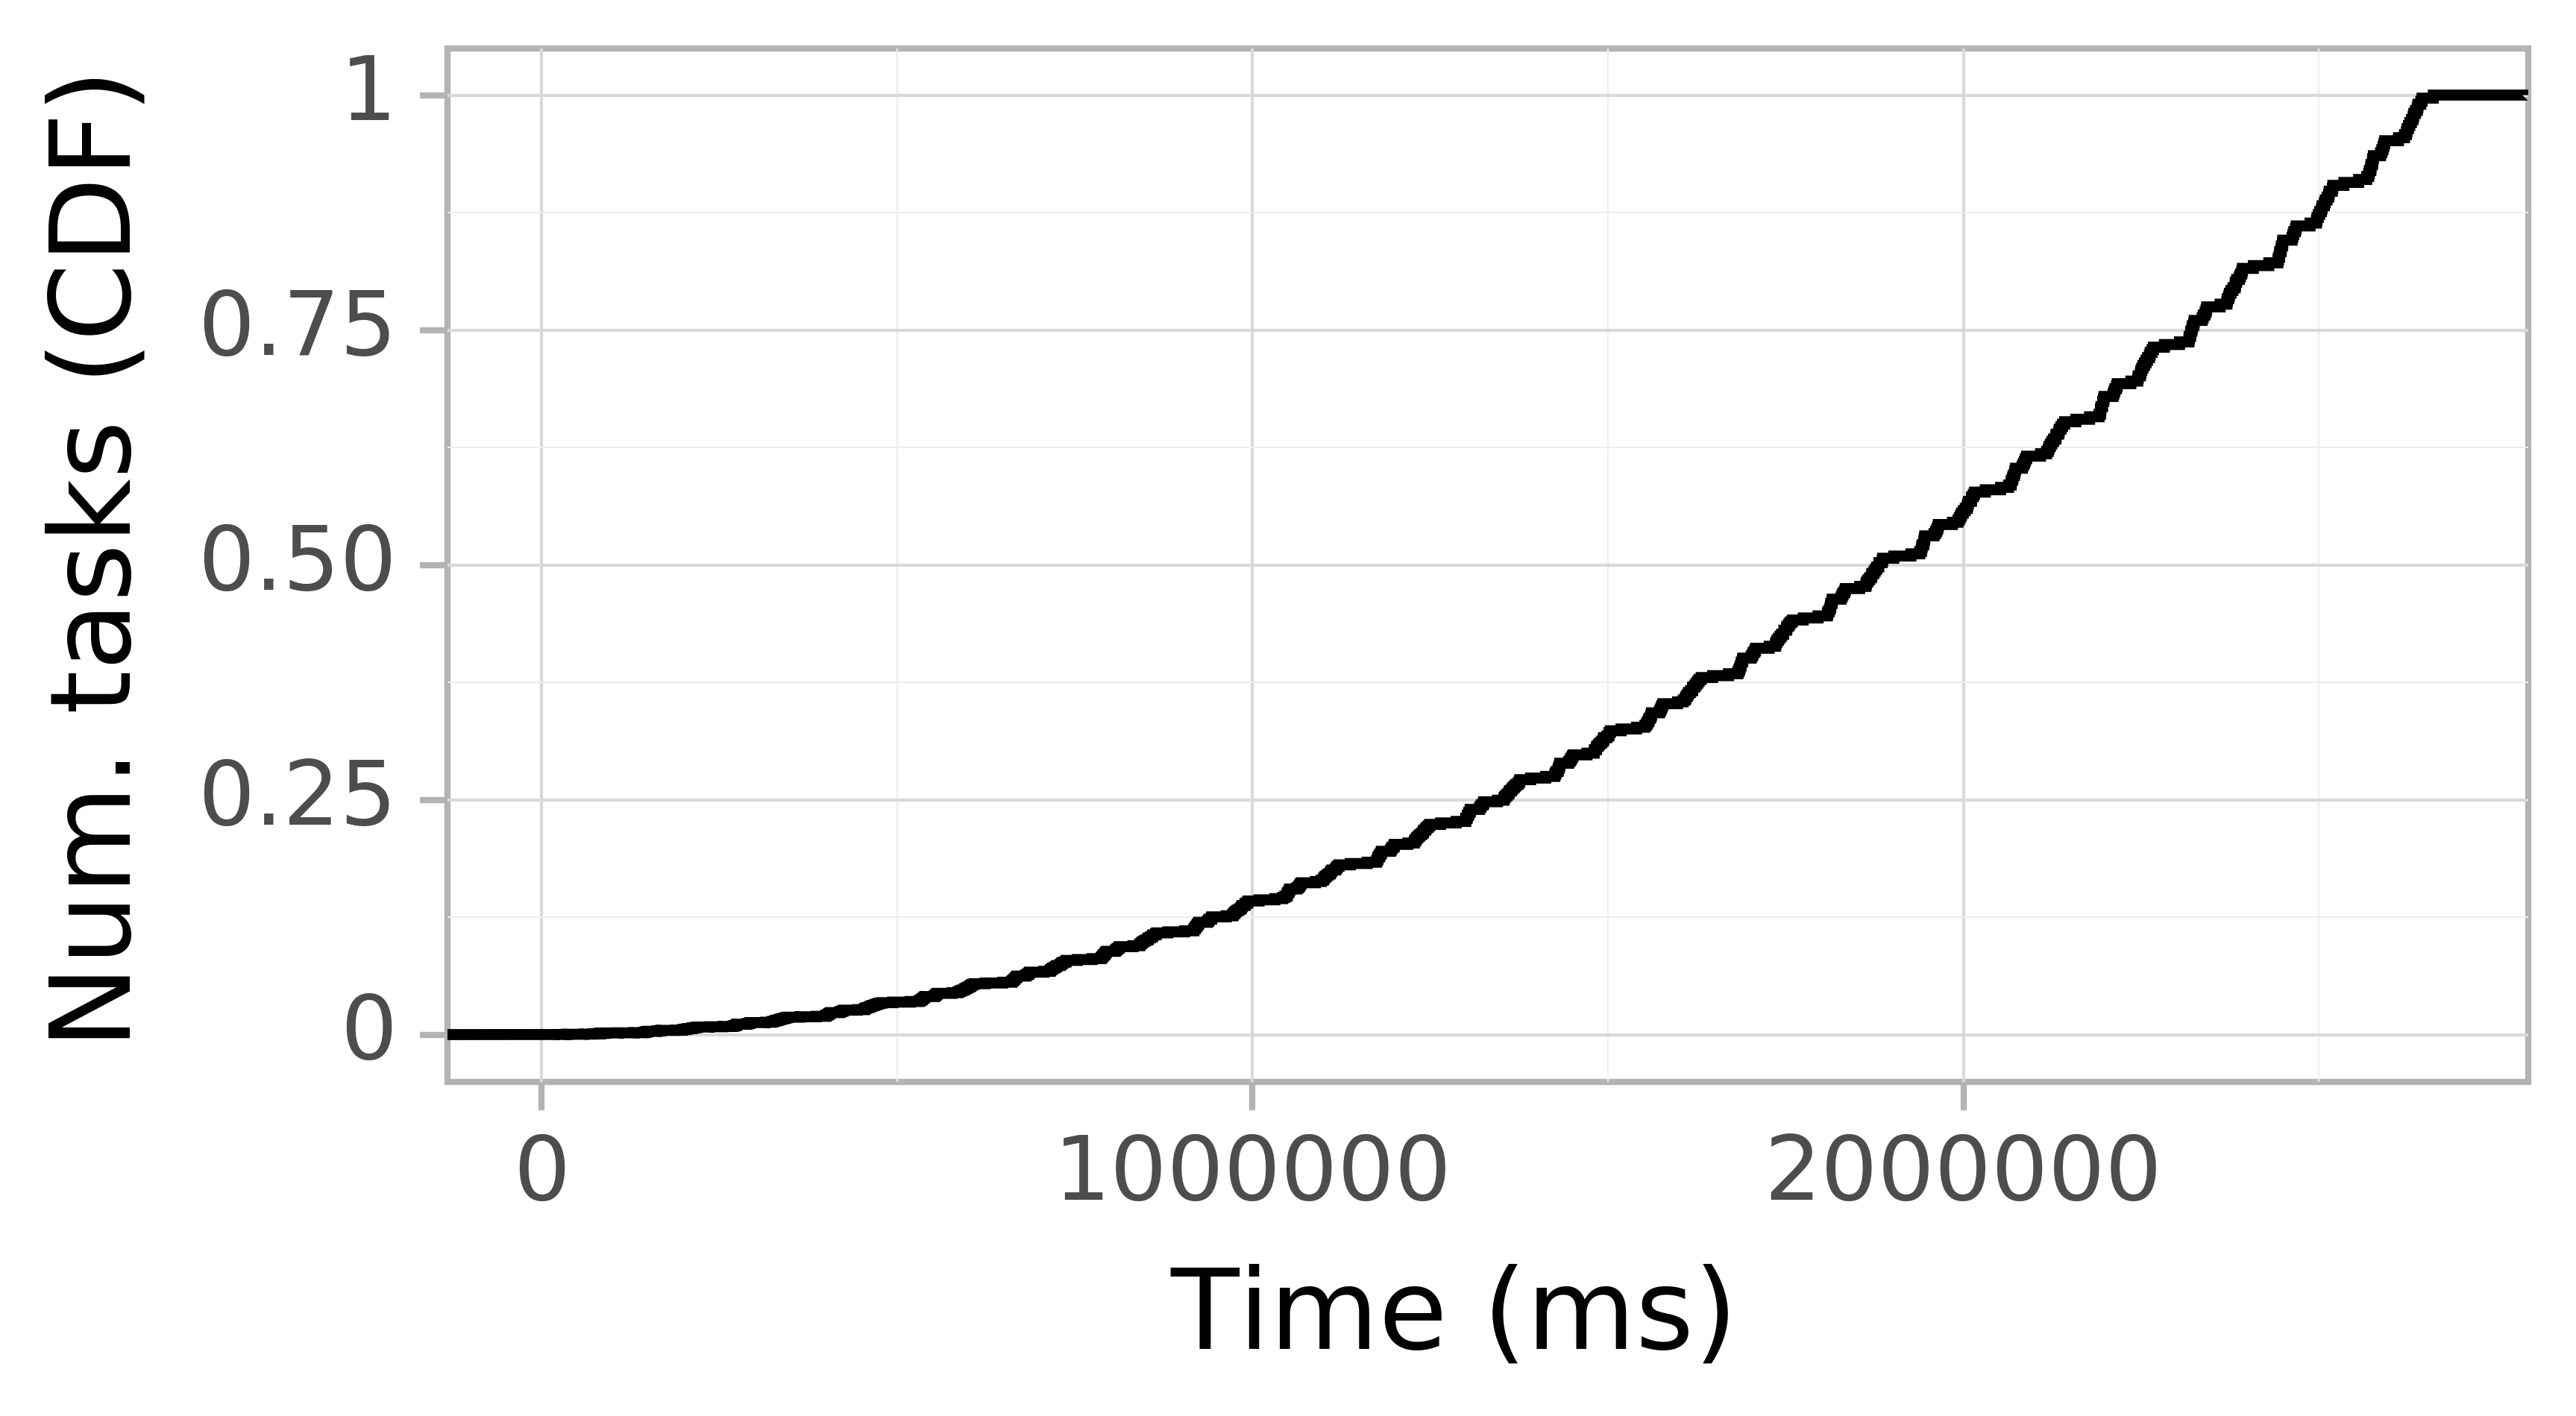 Task arrival CDF graph for the askalon-new_ee12 trace.